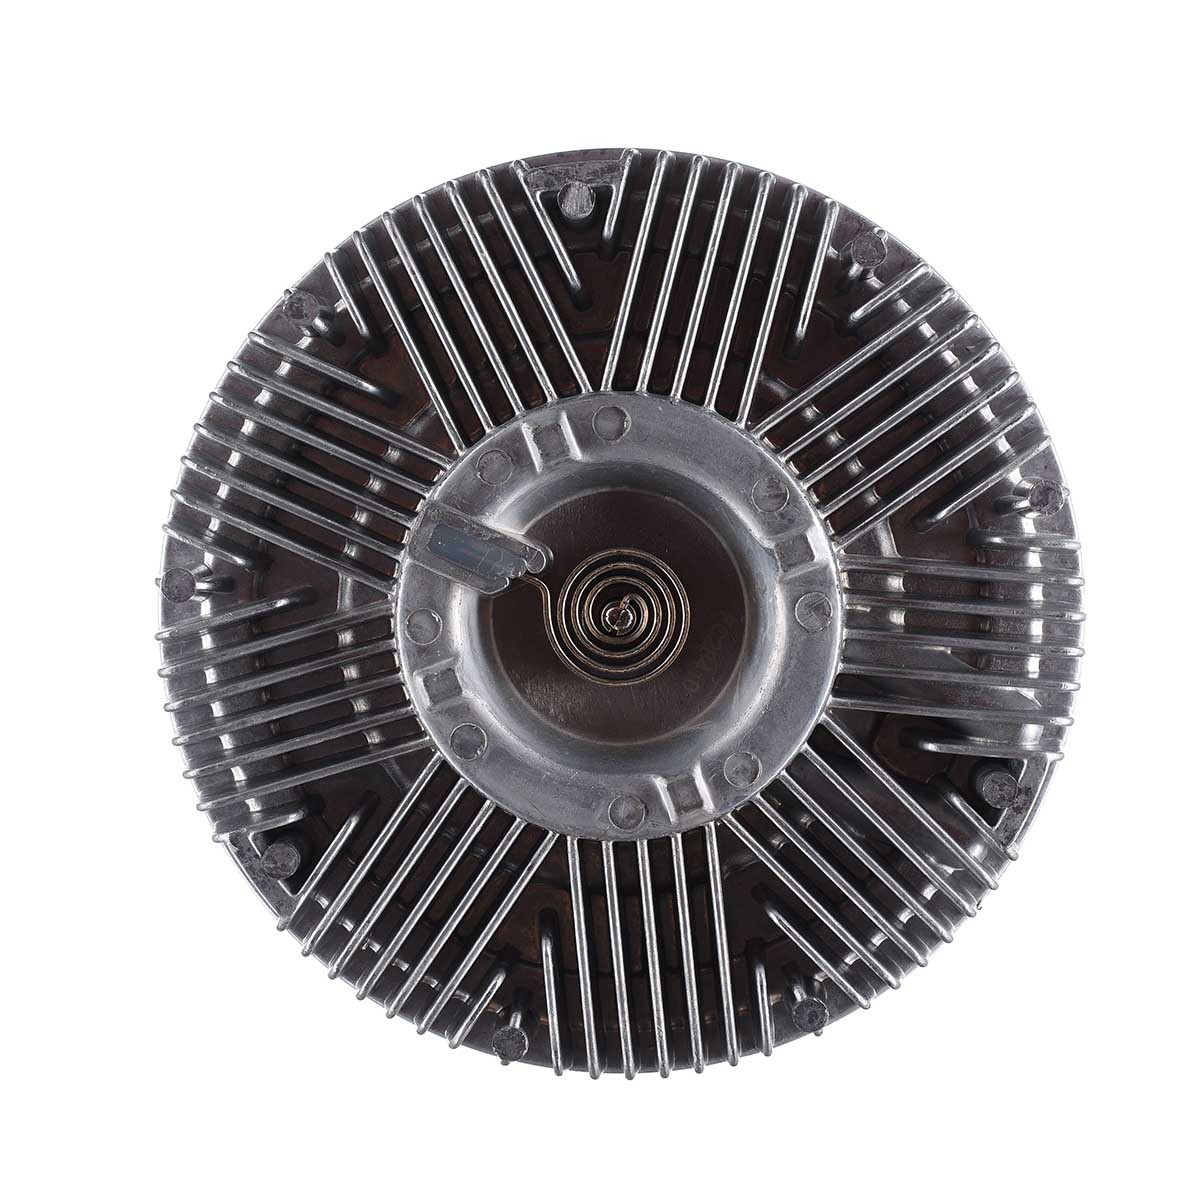 hight resolution of cooling fan clutch for ford explorer 1996 2001 mercury mountaineer 1997 1998 1999 2000 2001 v8 5 0l f67z8a616na 2841 ohv engine in fans kits from